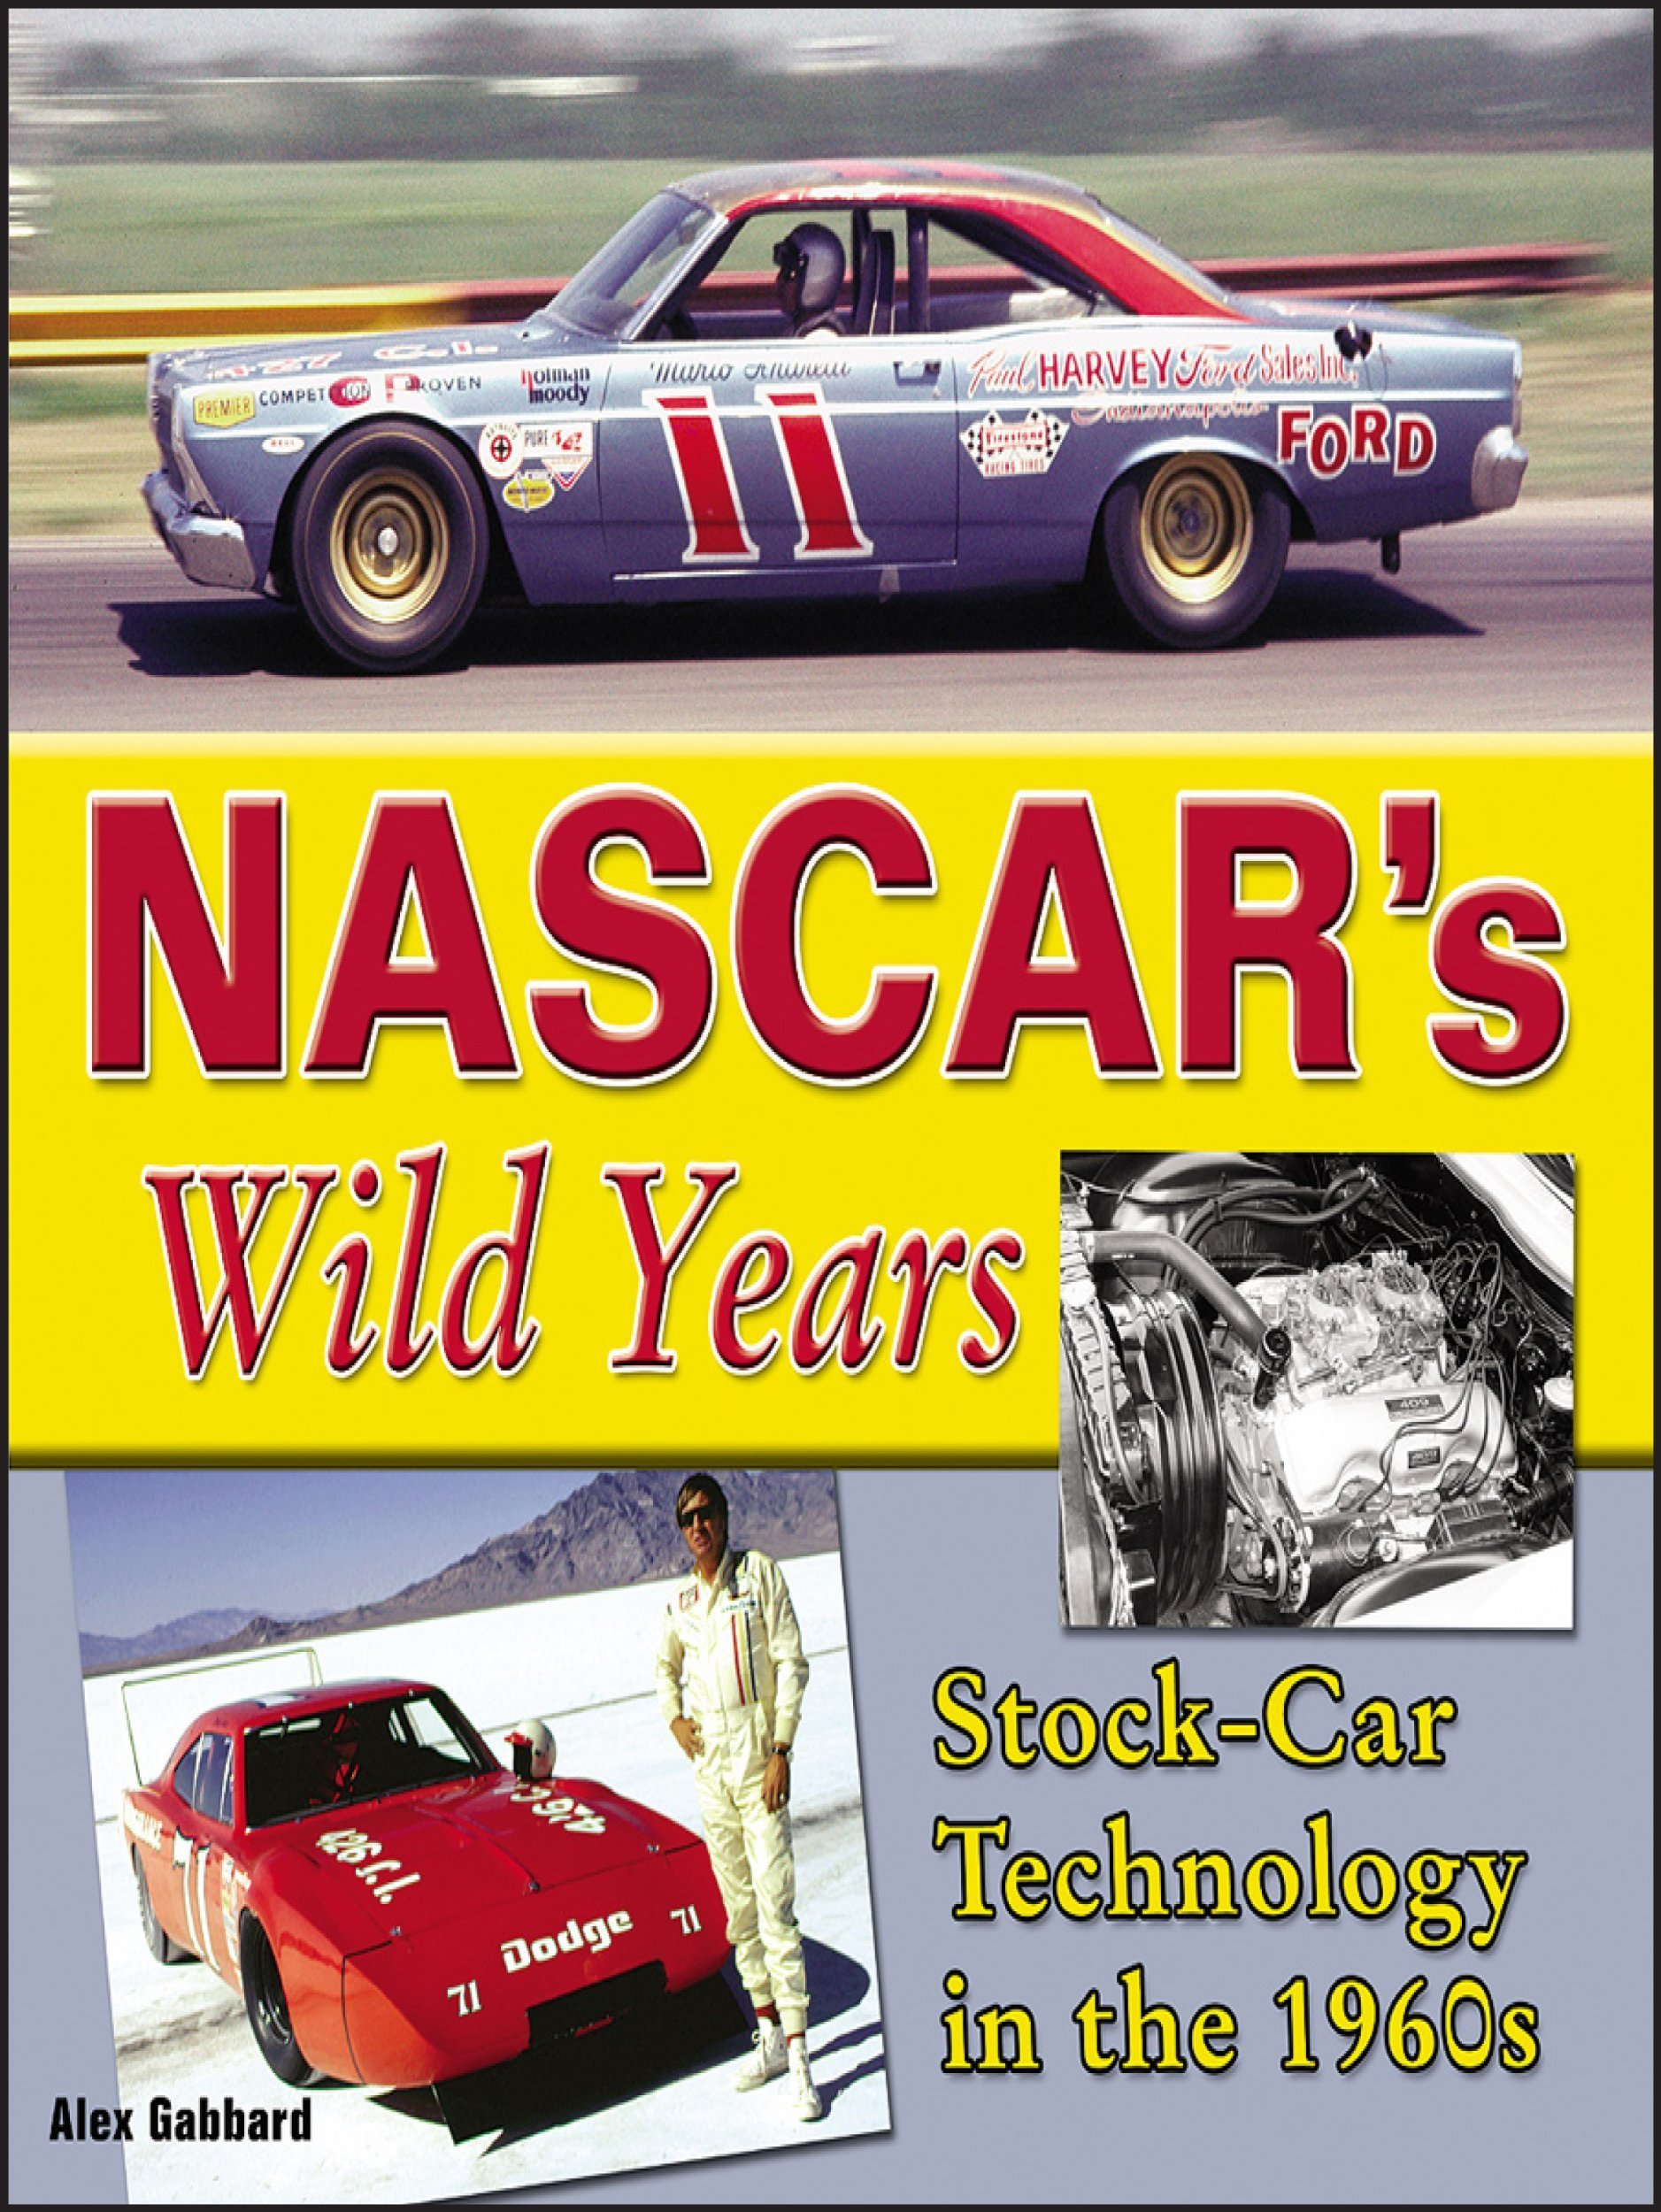 Image OfNascar's Wild Years: Stock-Car Technology In The 1960s